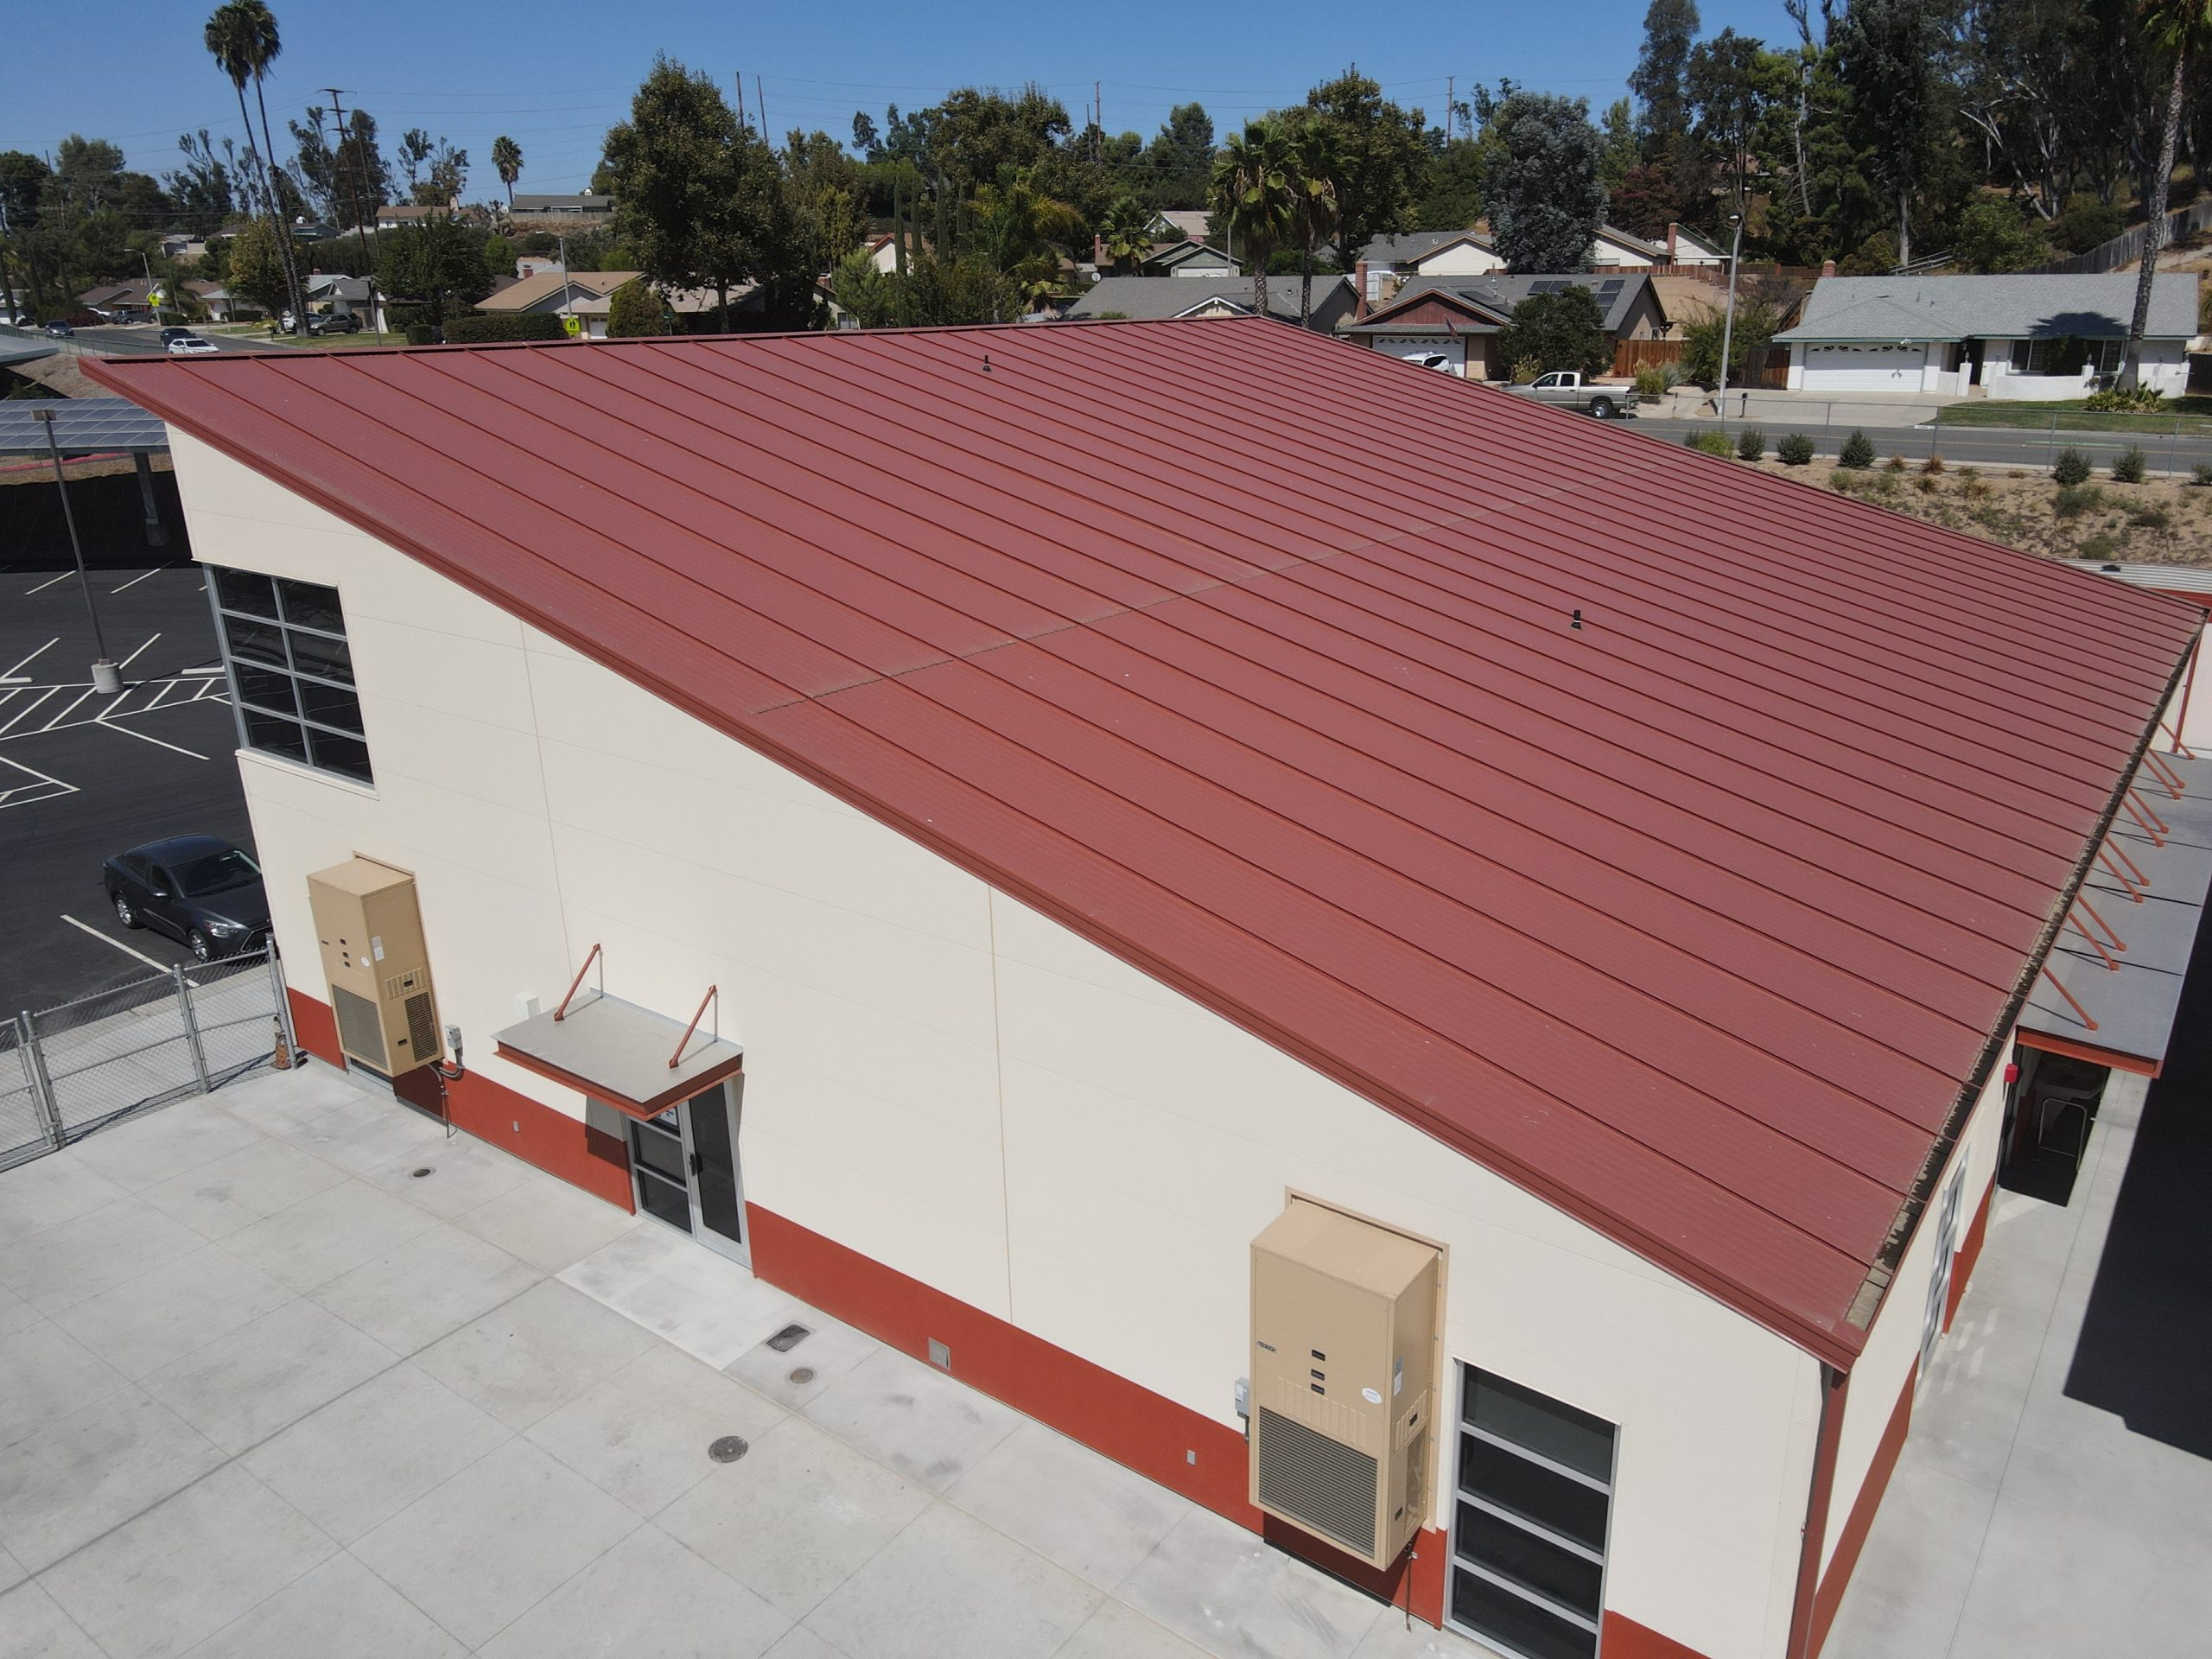 6,844 square feet of insulated roofing panels in a Terra Cotta finish